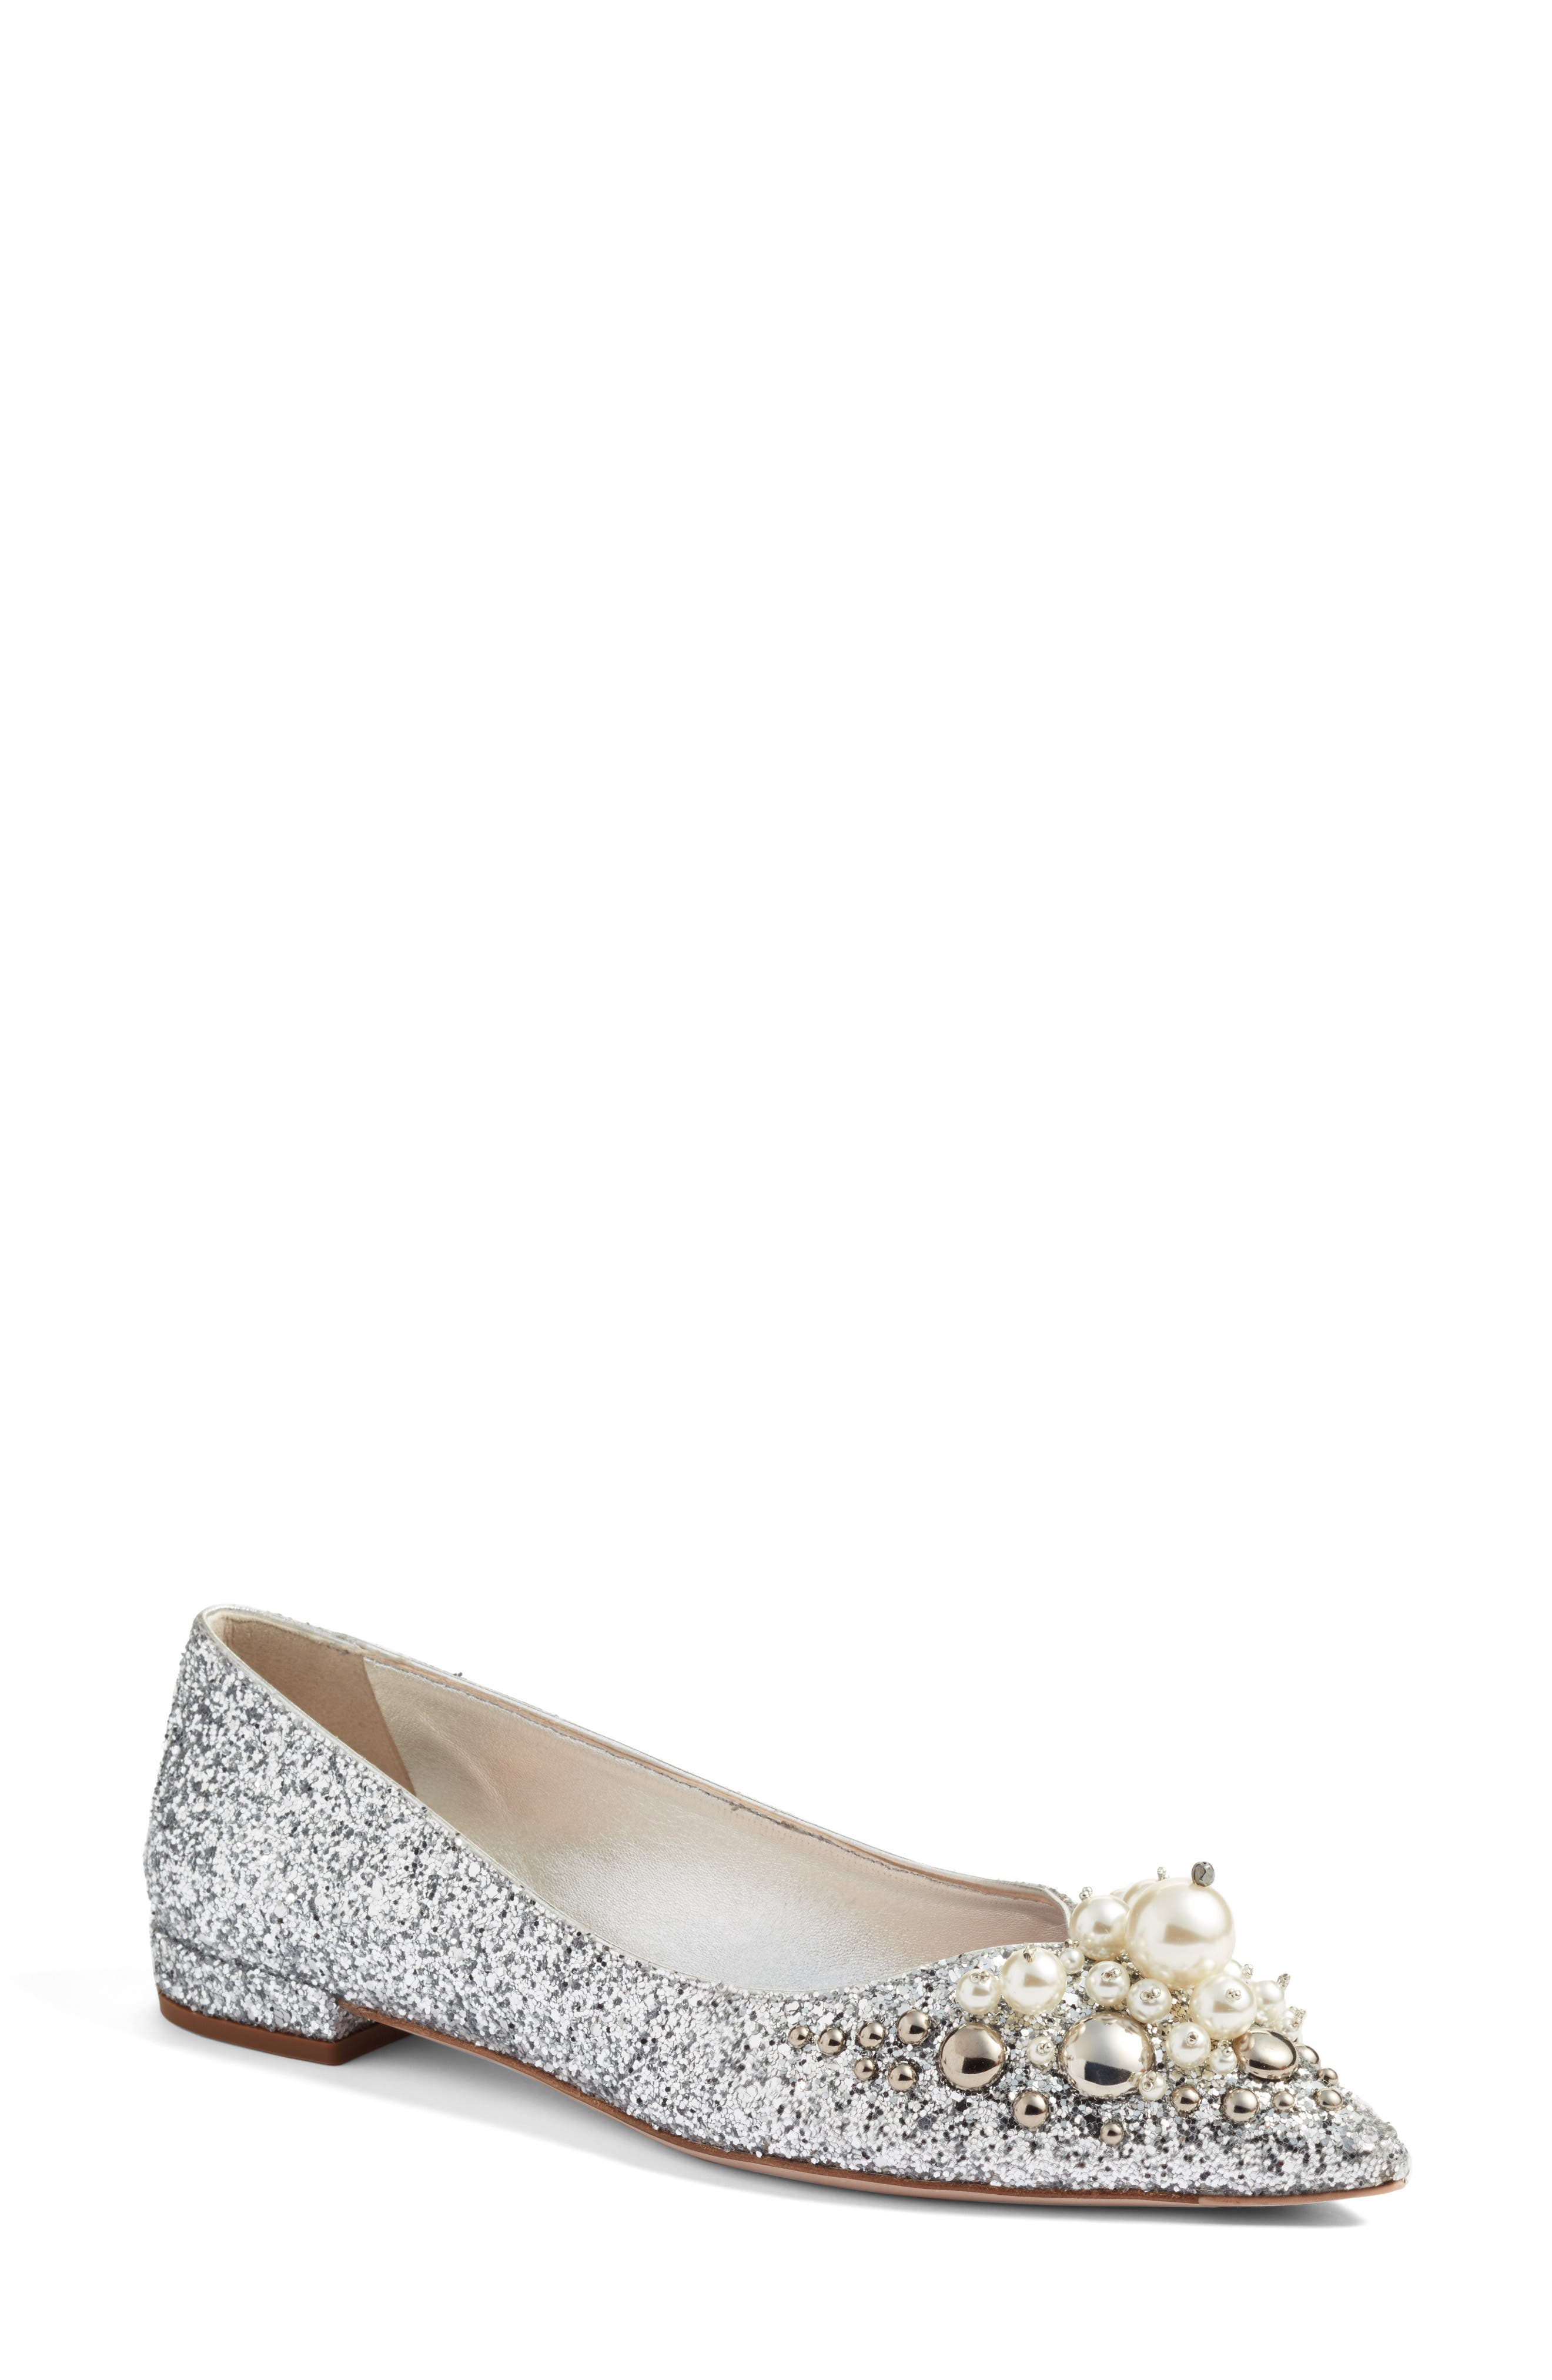 Miu Miu Embellished Pointy Toe Flat (Women)